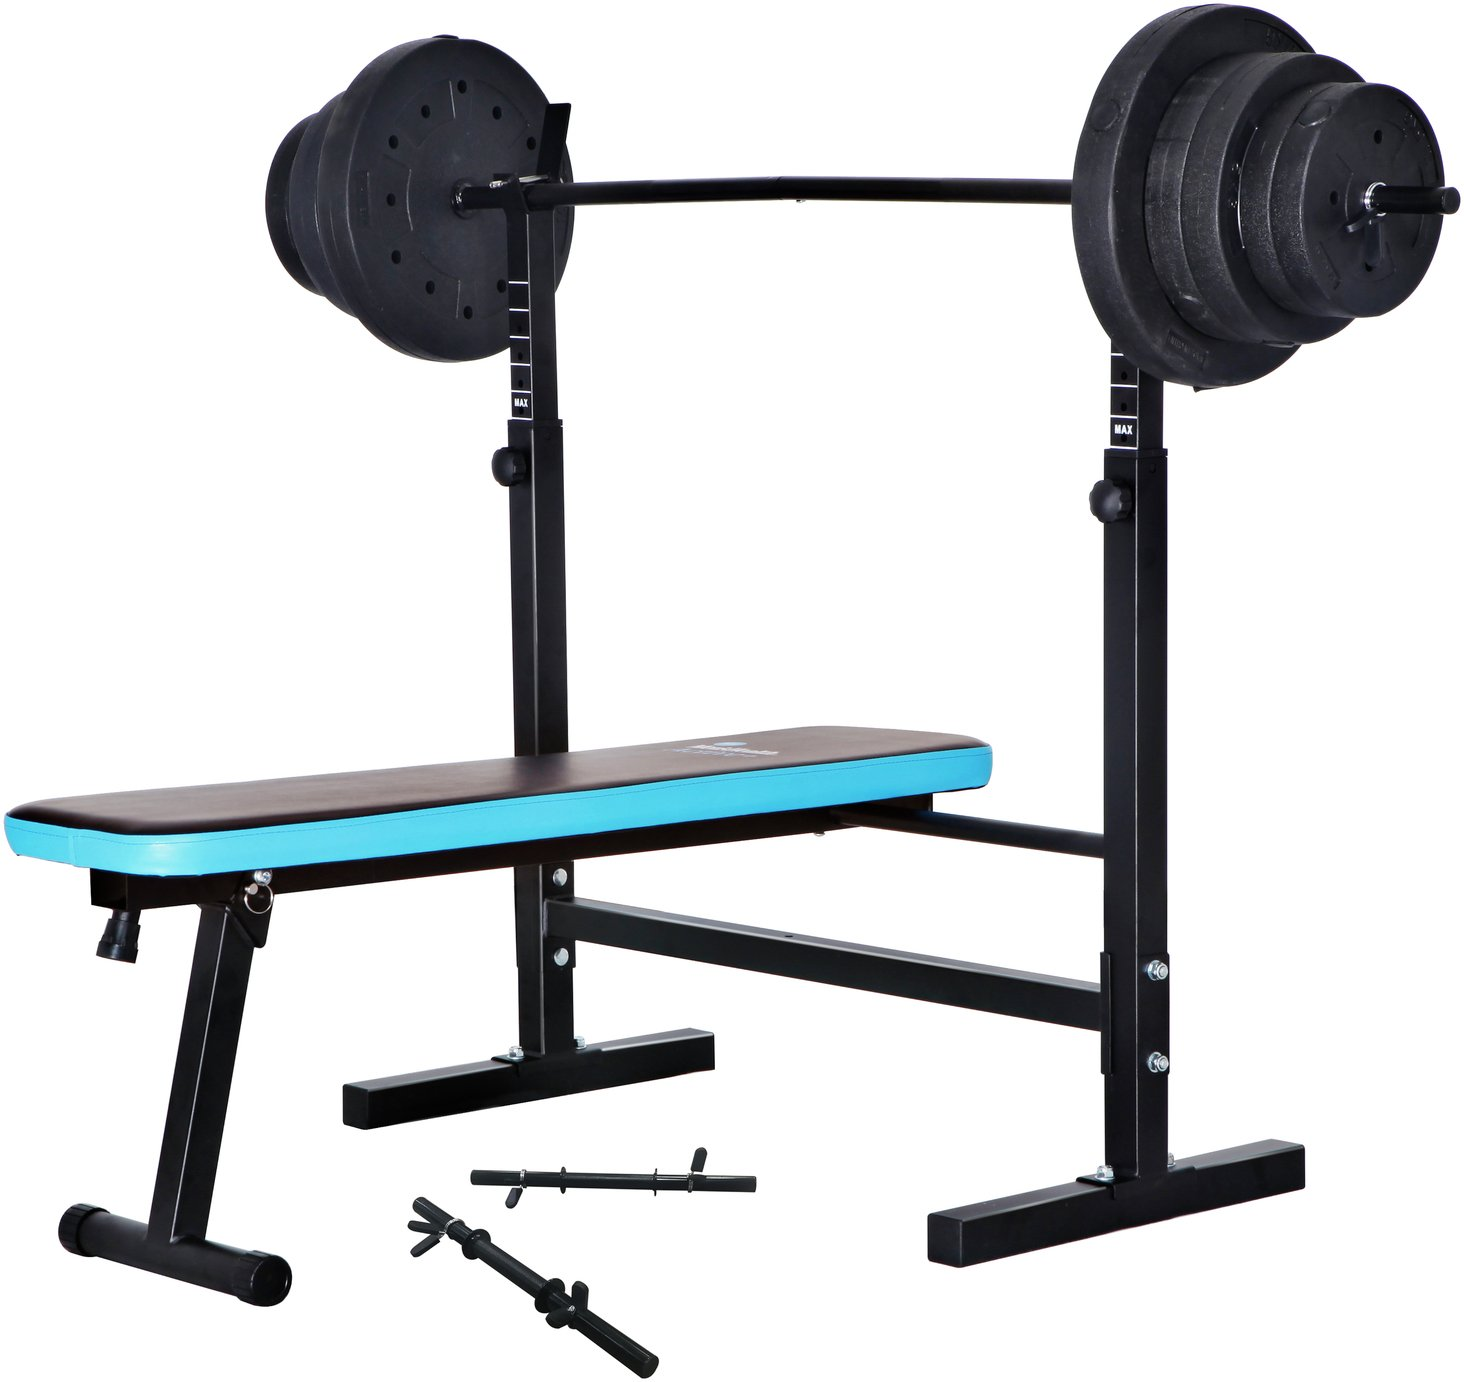 chair gym argos walmart leather buy men s health folding bench with 50kg weights weight benches